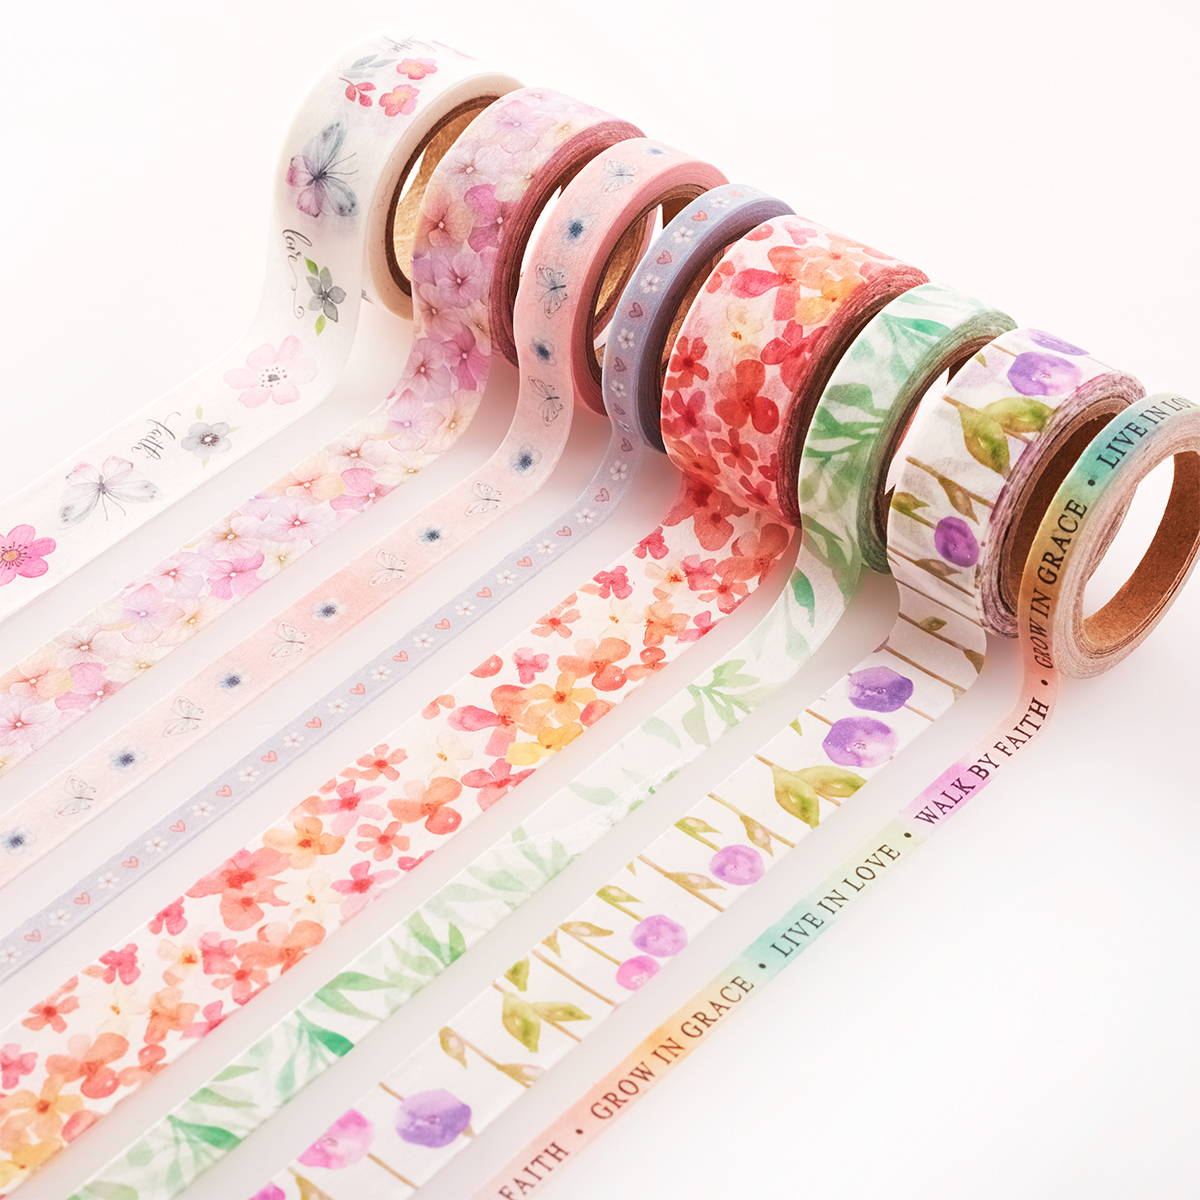 washi tape bible journaling promise bible